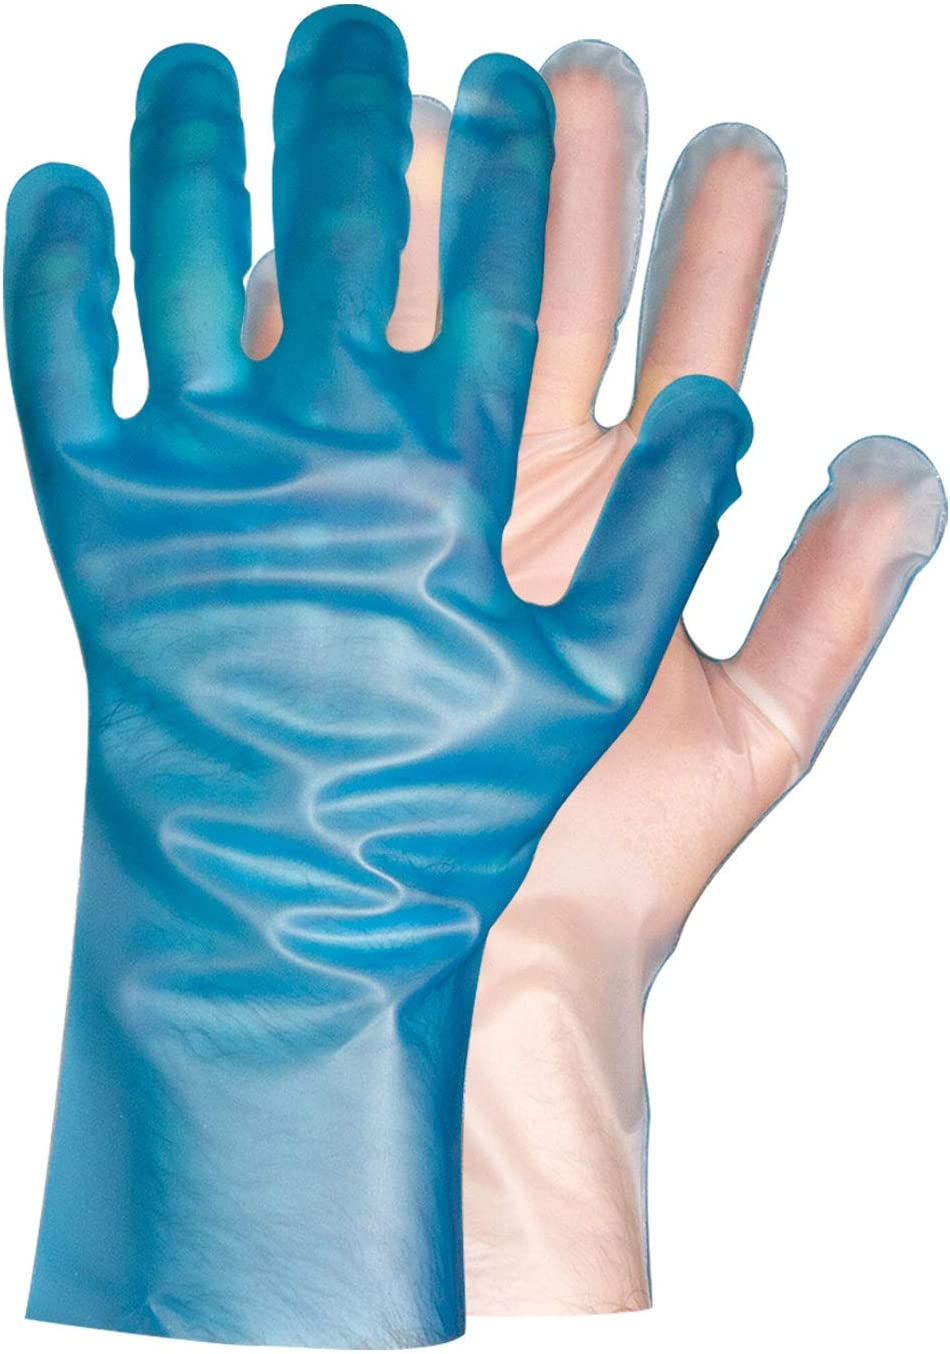 B07SMWTG1M Super Strong Disposable BBQ Gloves by Protospheric. Food Prep Safety Cut /Tear Resistant Level 1, Abrasion Chemical Water Resistant. Free of: Nitrile Latex Vinyl Rubber Powder. 10 pair M 71JIzQNEeSL